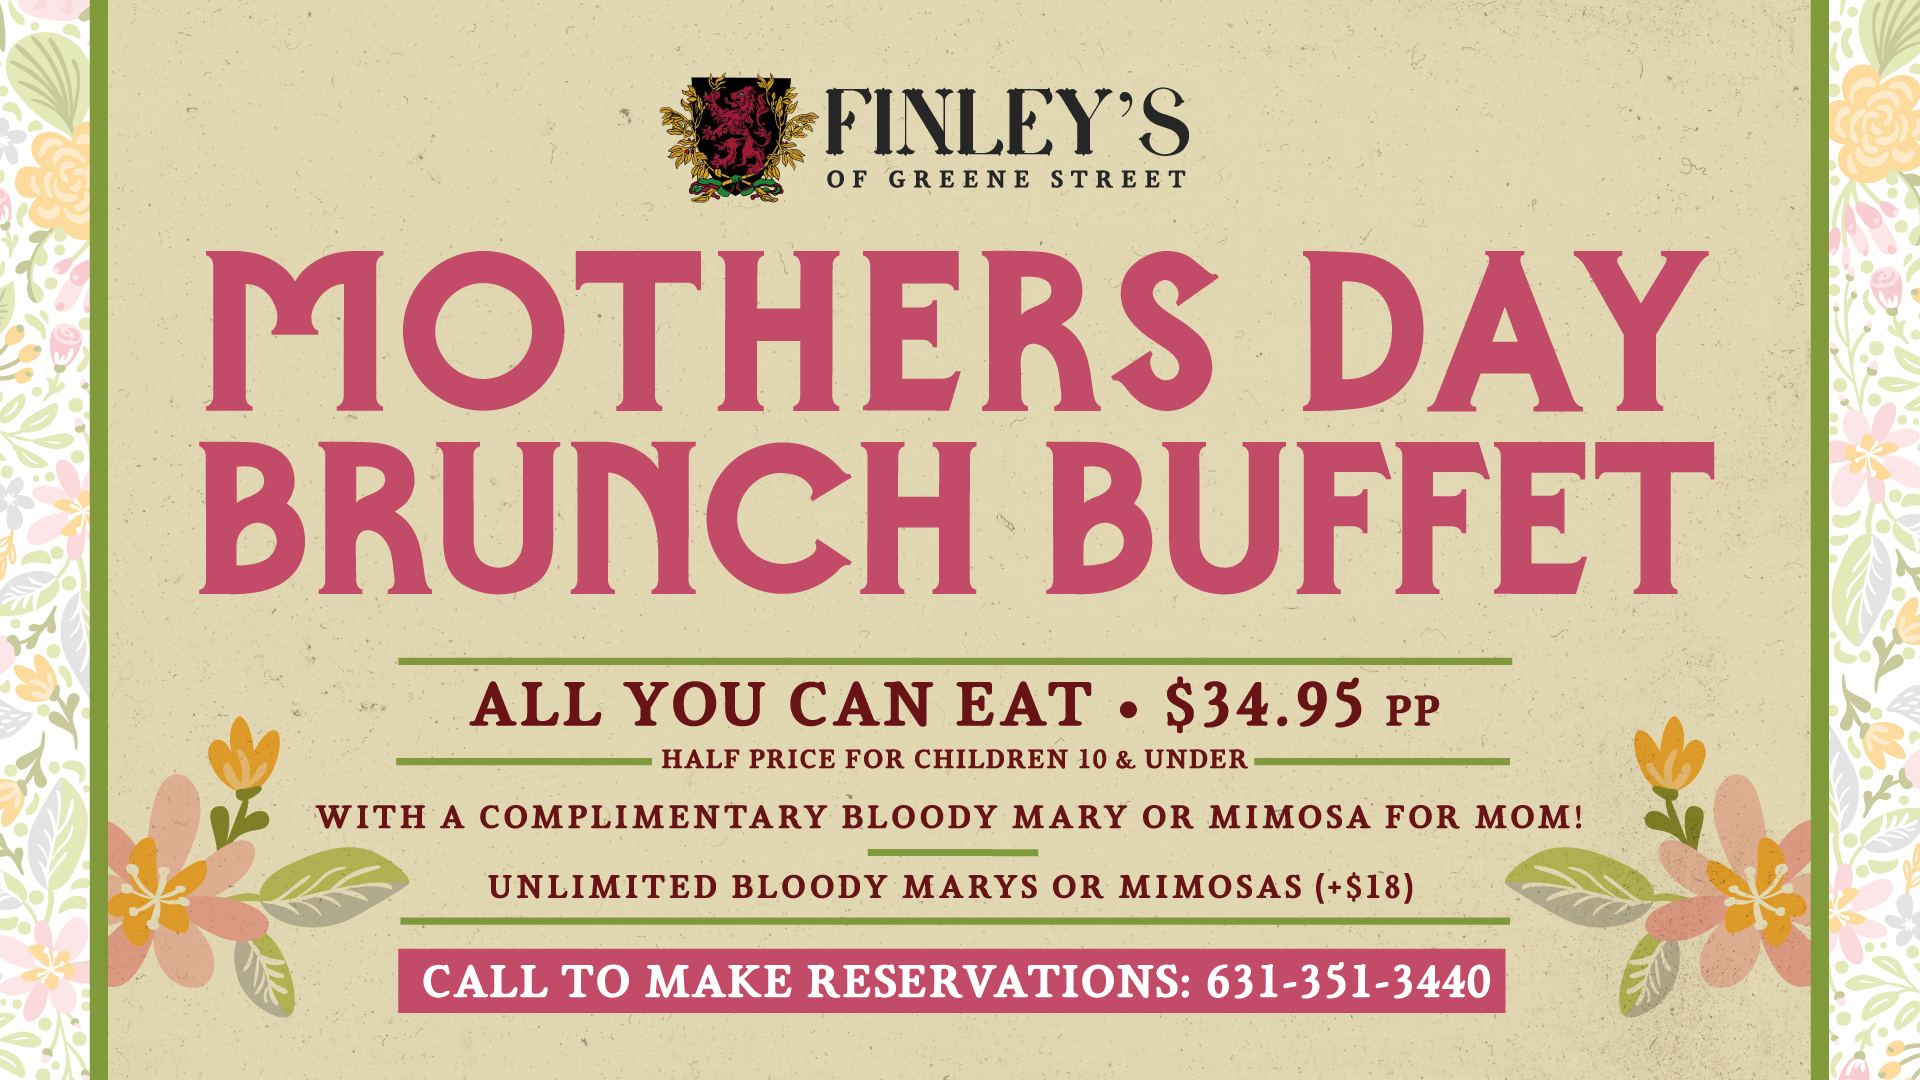 Mother's Day Brunch Buffet Flyer